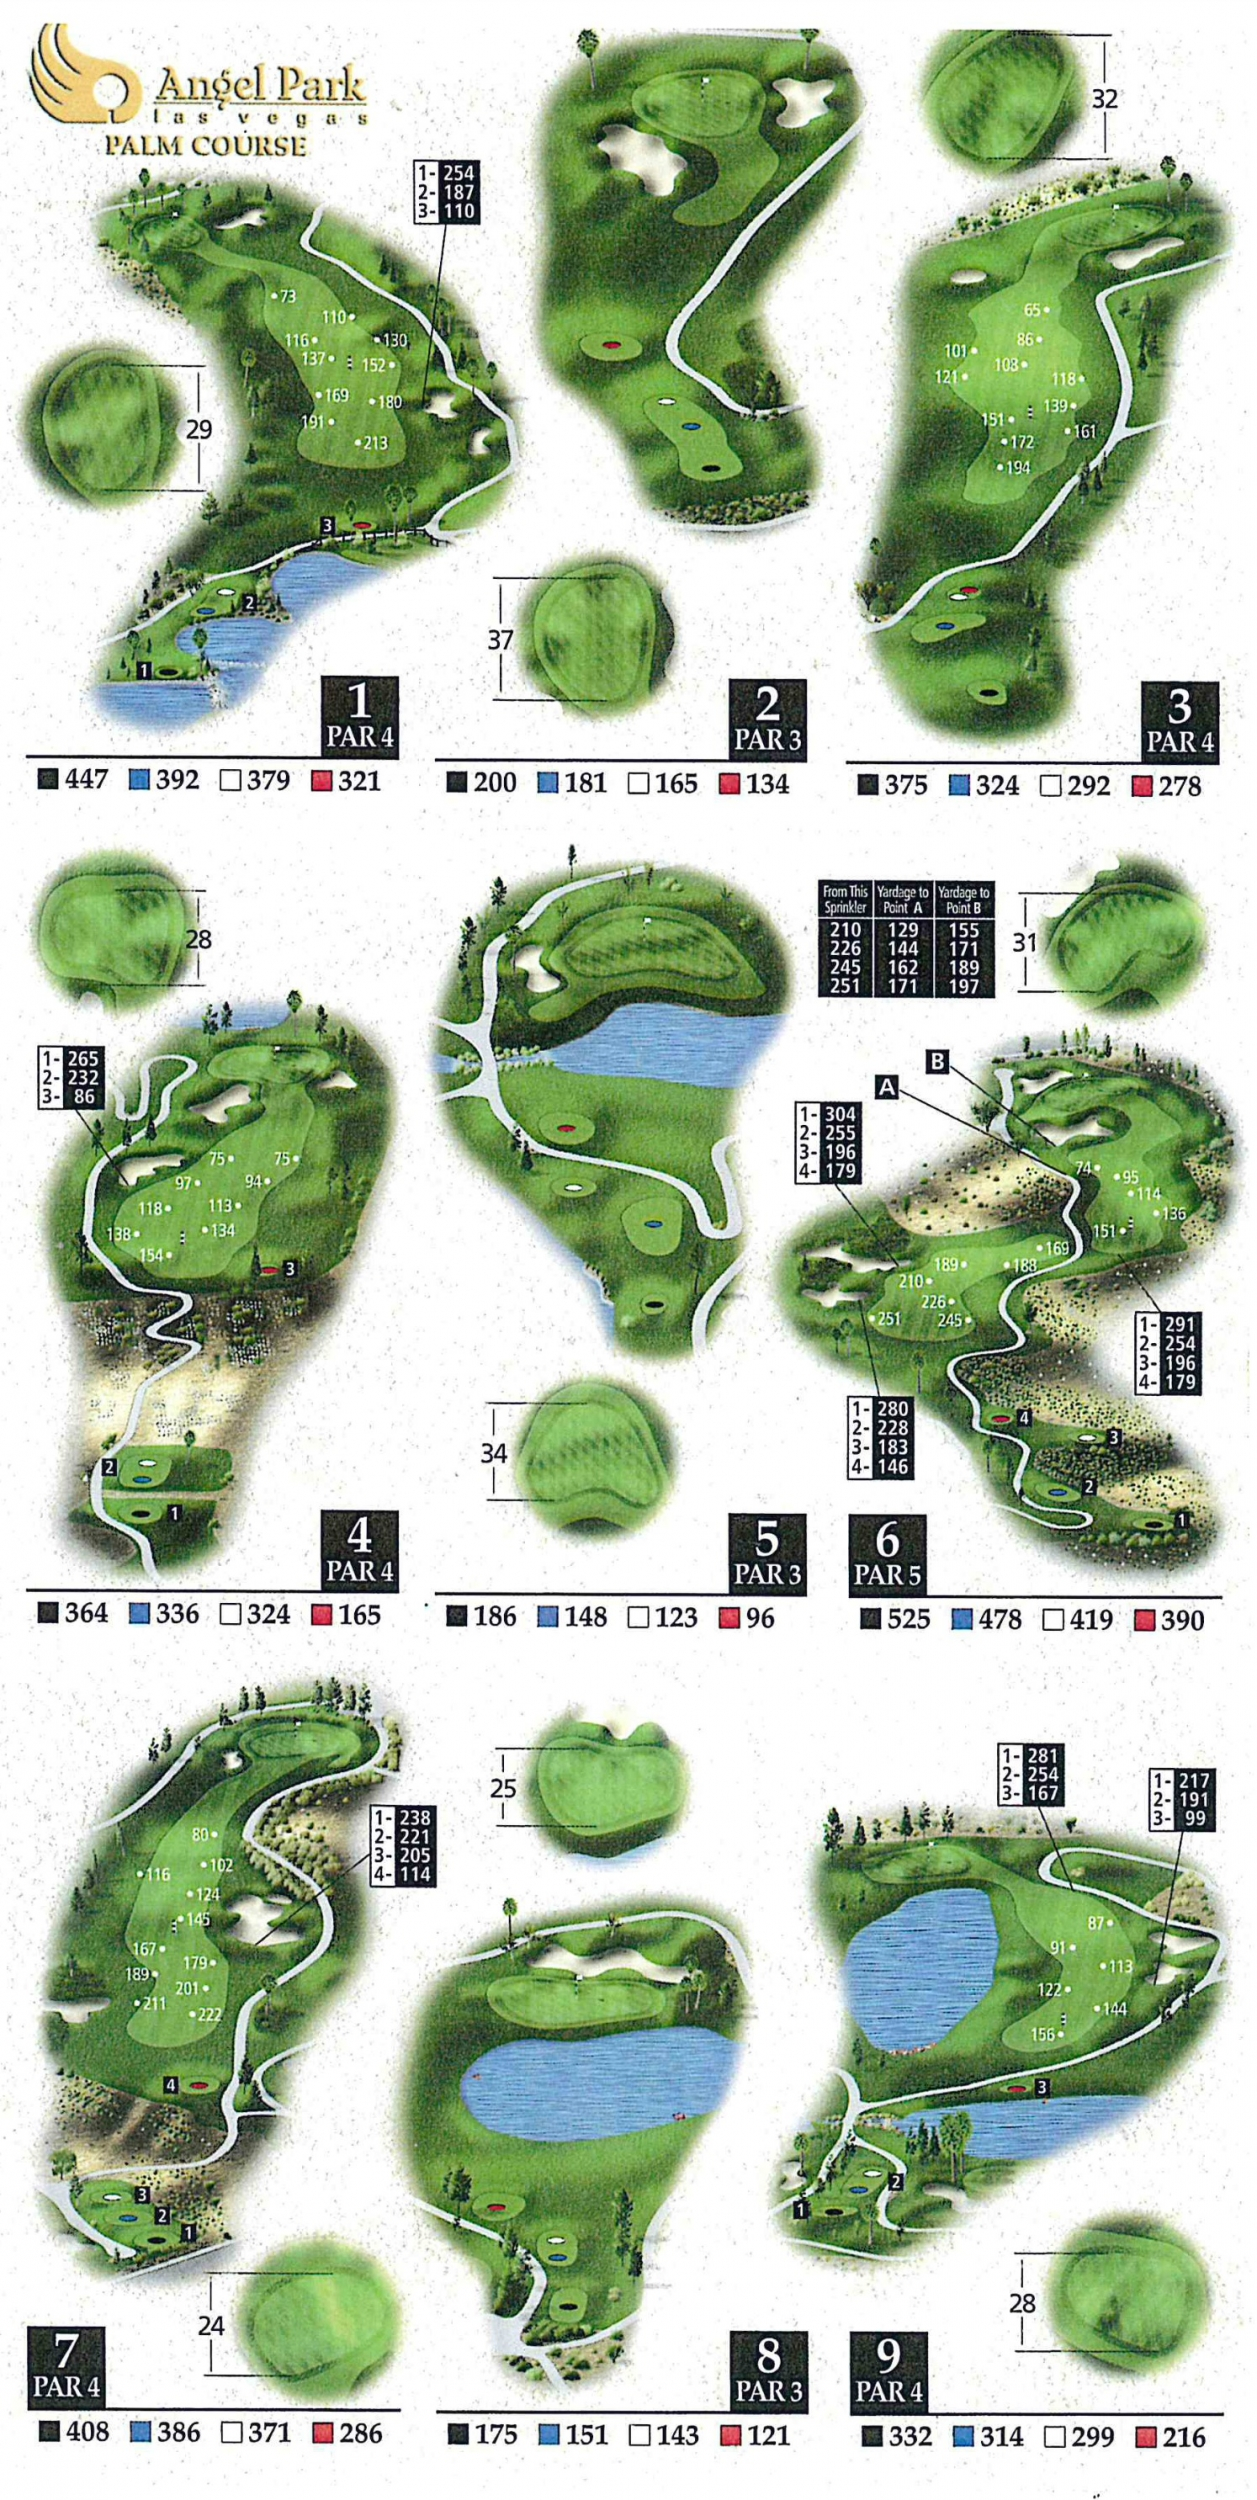 Angel Park Golf Club - Palm Course on golf course layout maps, golf green maps, golf courses map of us, golf yardage book,